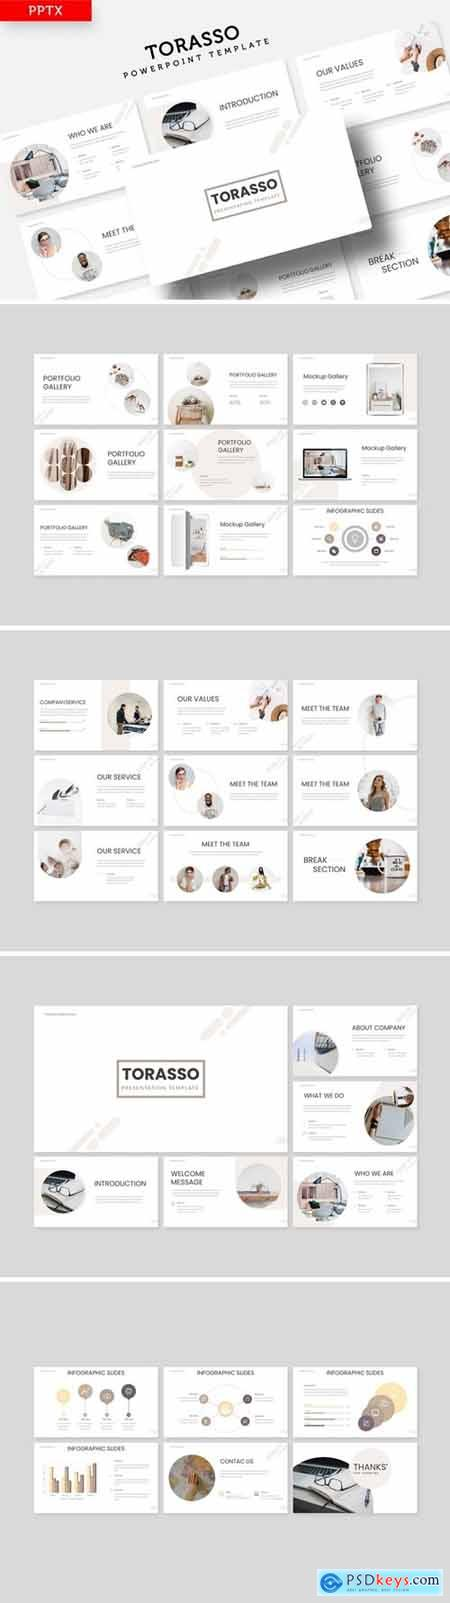 Torasso Powerpoint, Keynote and Google Slides Templates